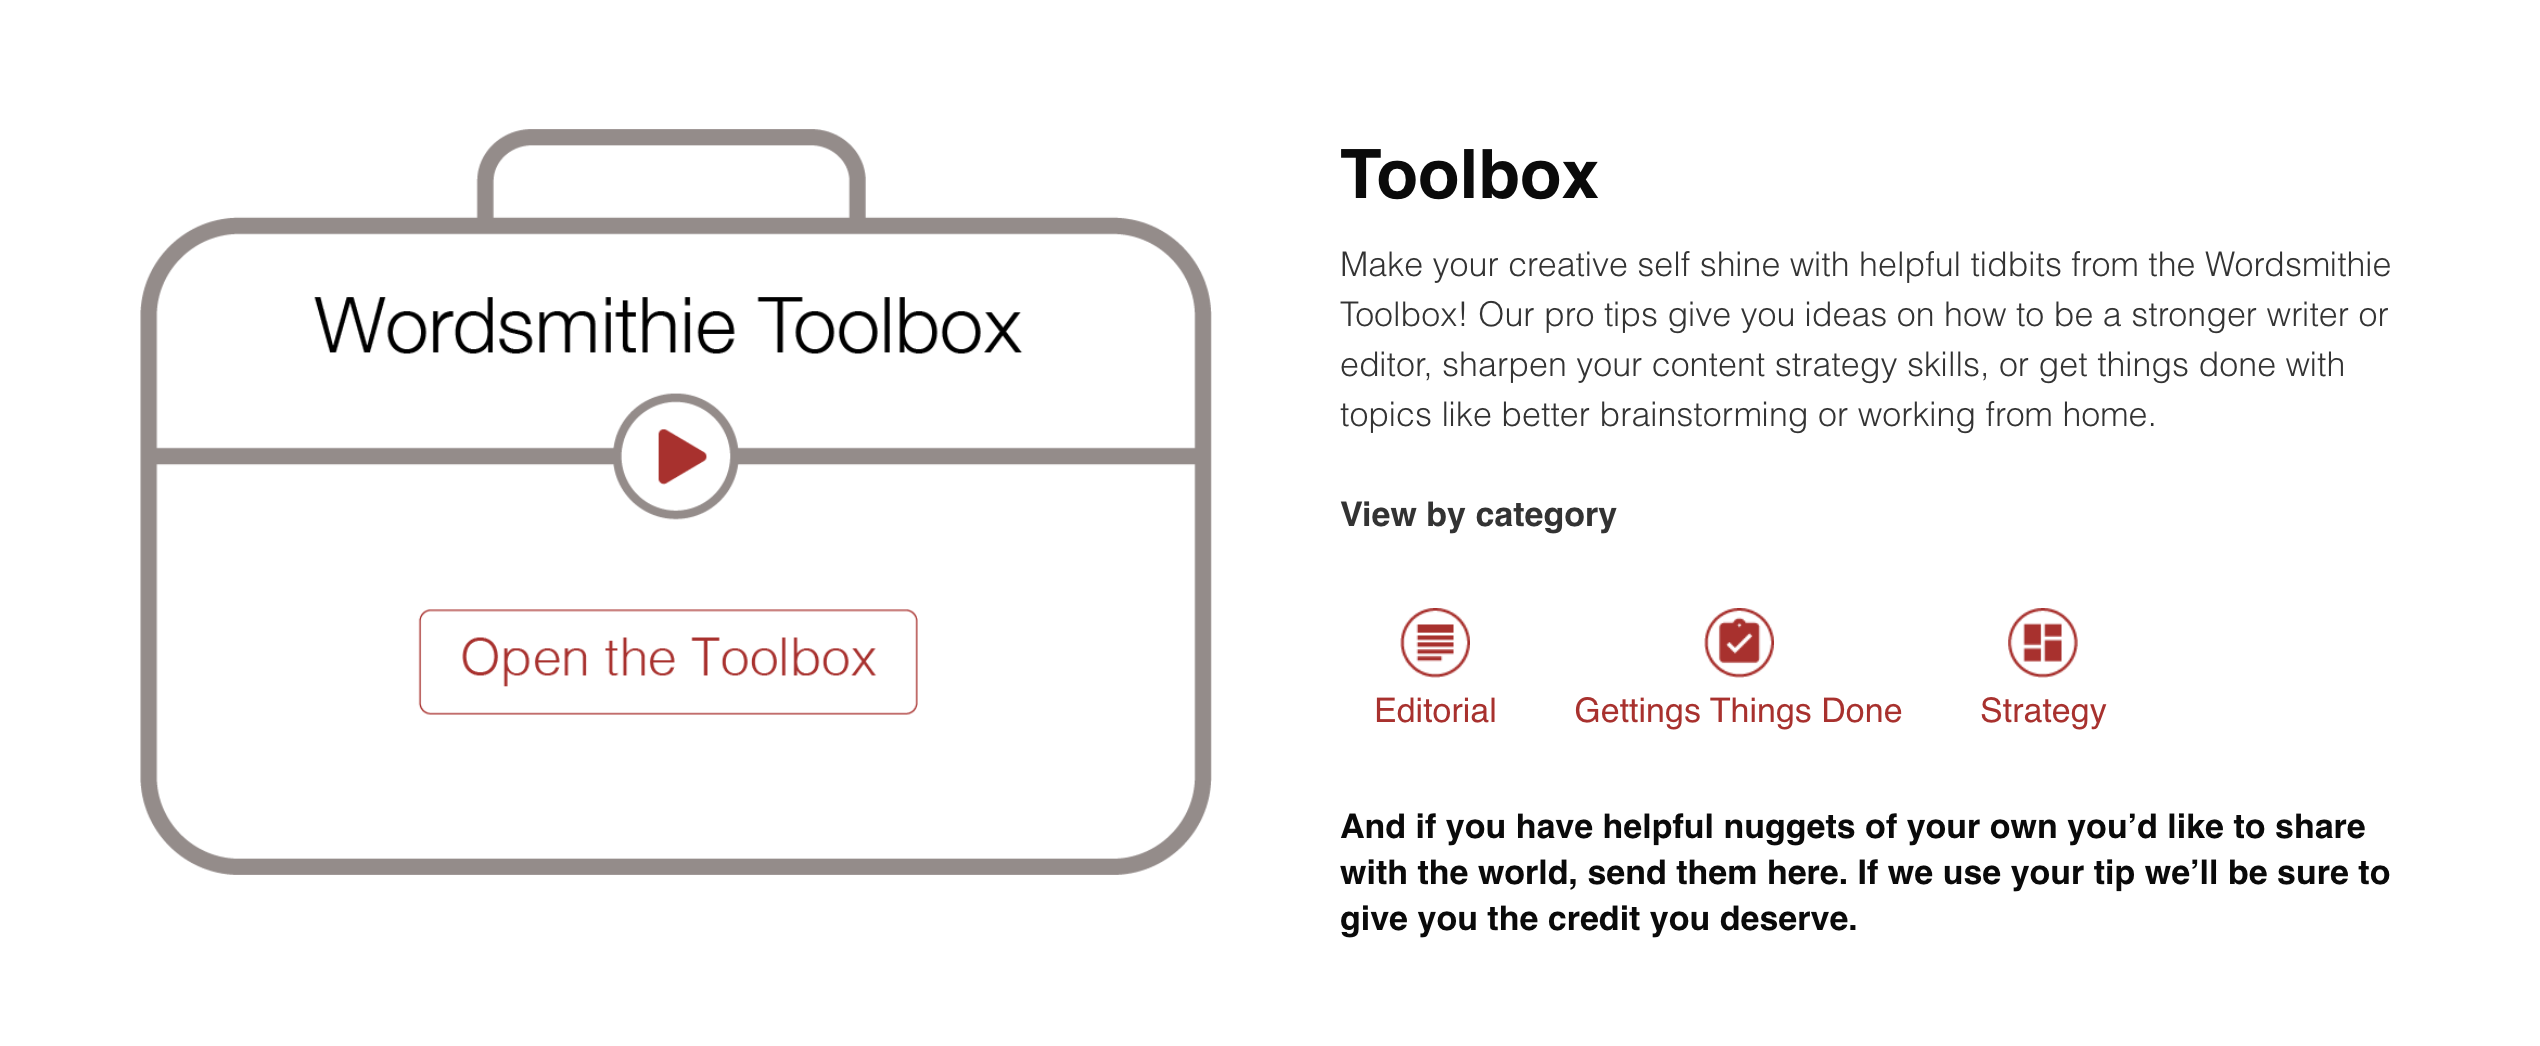 Introducing the Wordsmithie Toolbox: Learn and Share Helpful Creative, Strategic, and Organizational Tips